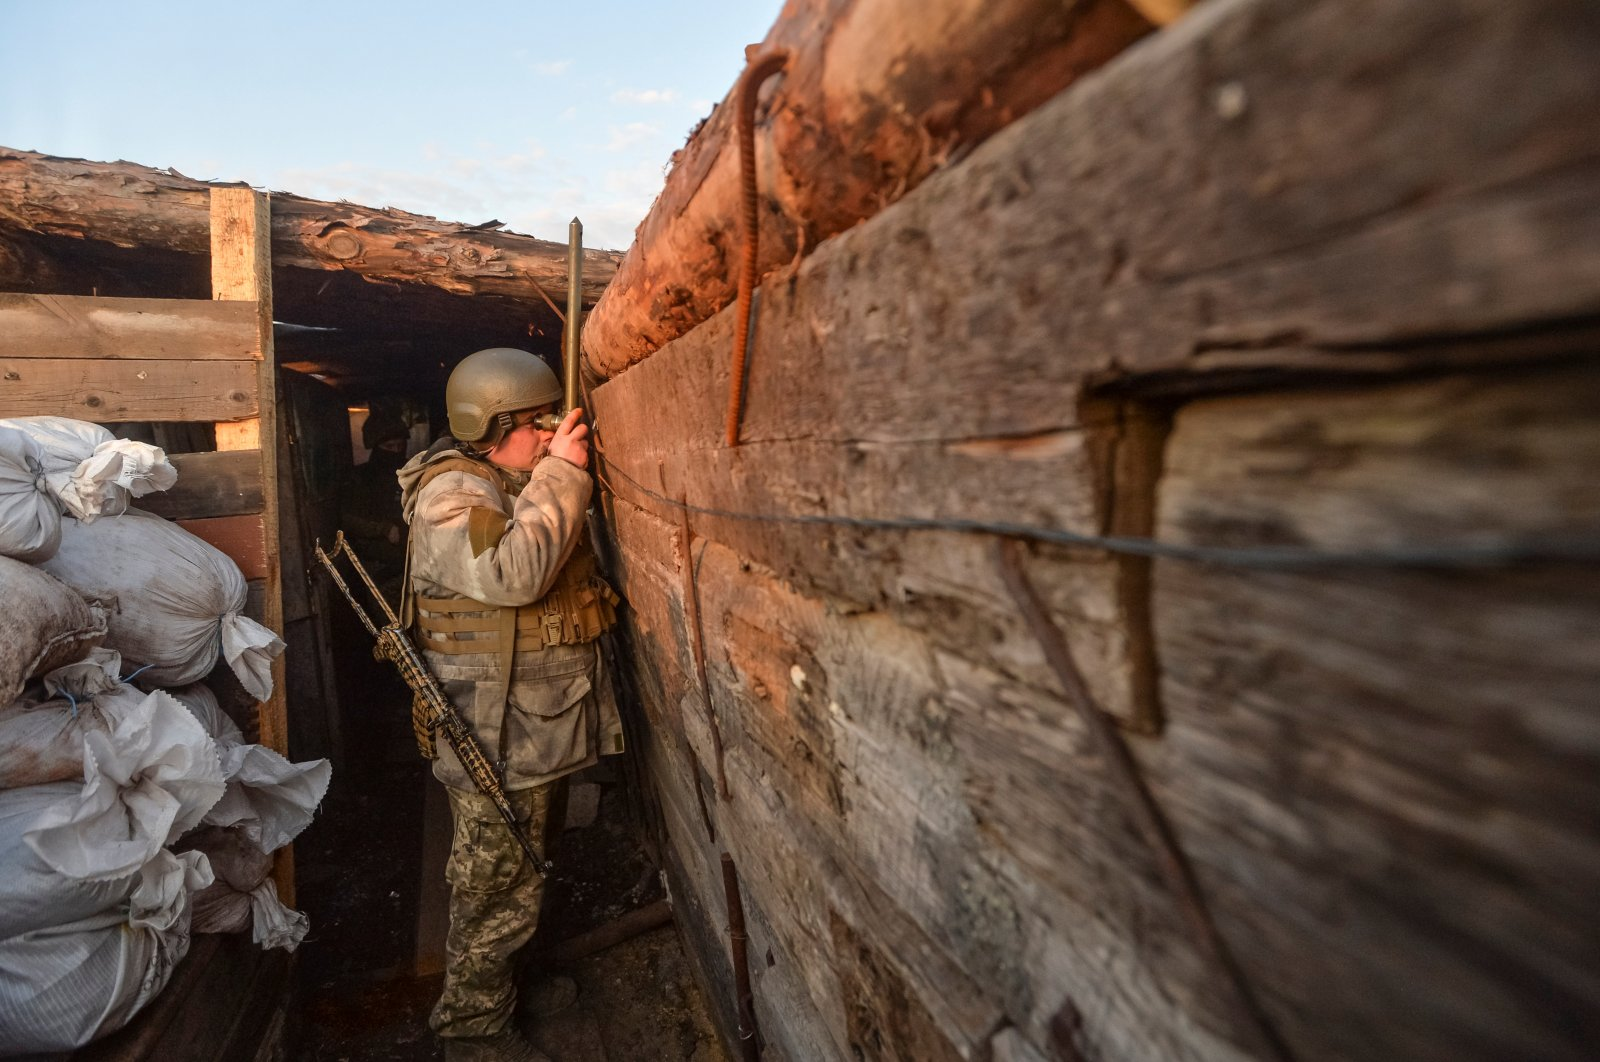 A service member of the Ukrainian armed forces is seen at fighting positions on the line of separation from pro-Russian rebels near Donetsk, Ukraine, April 10, 2021. (Reuters Photo)